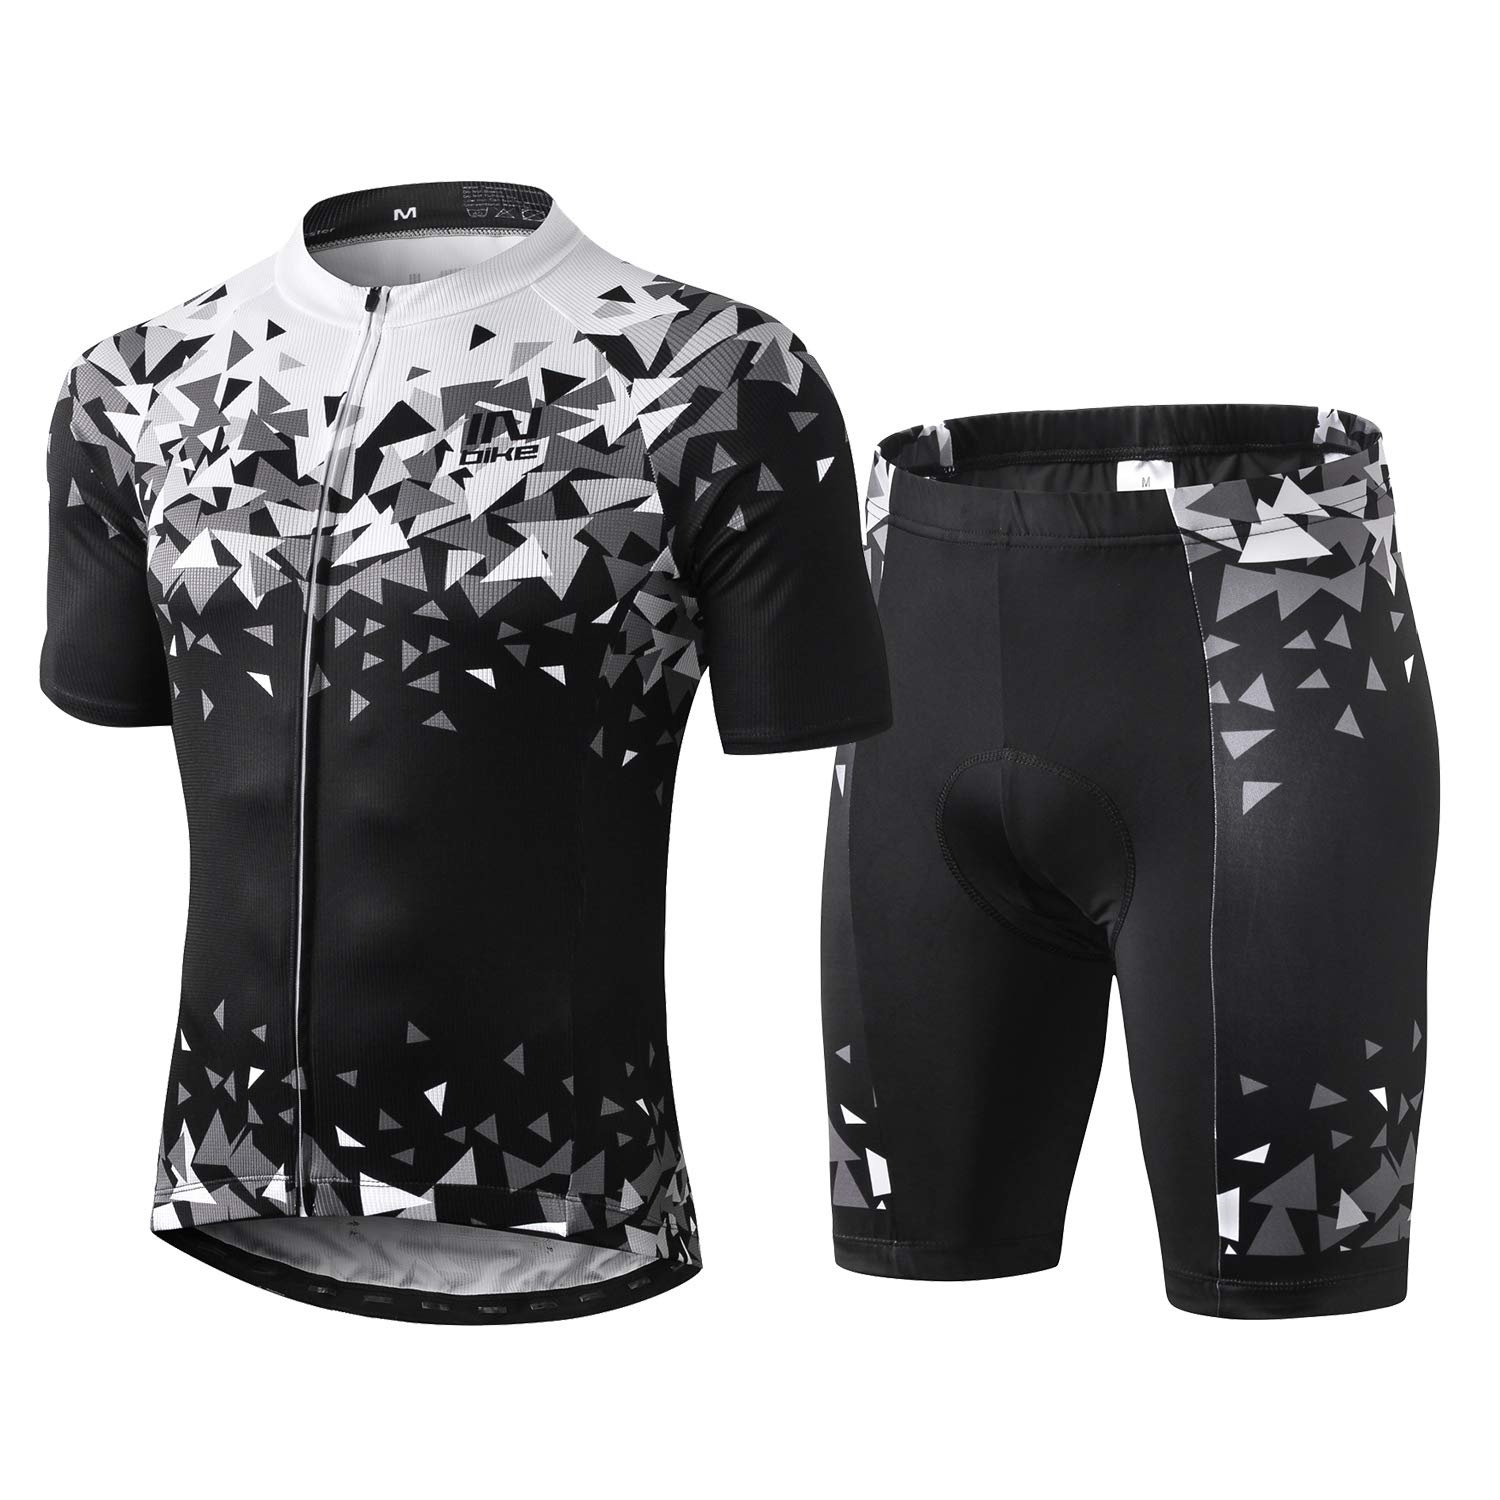 INBIKE Men Cycling Jersey Set Short Sleeve Breathable Bike Shirt with Padded Shorts G05 2XL (X-Large) by INBIKE